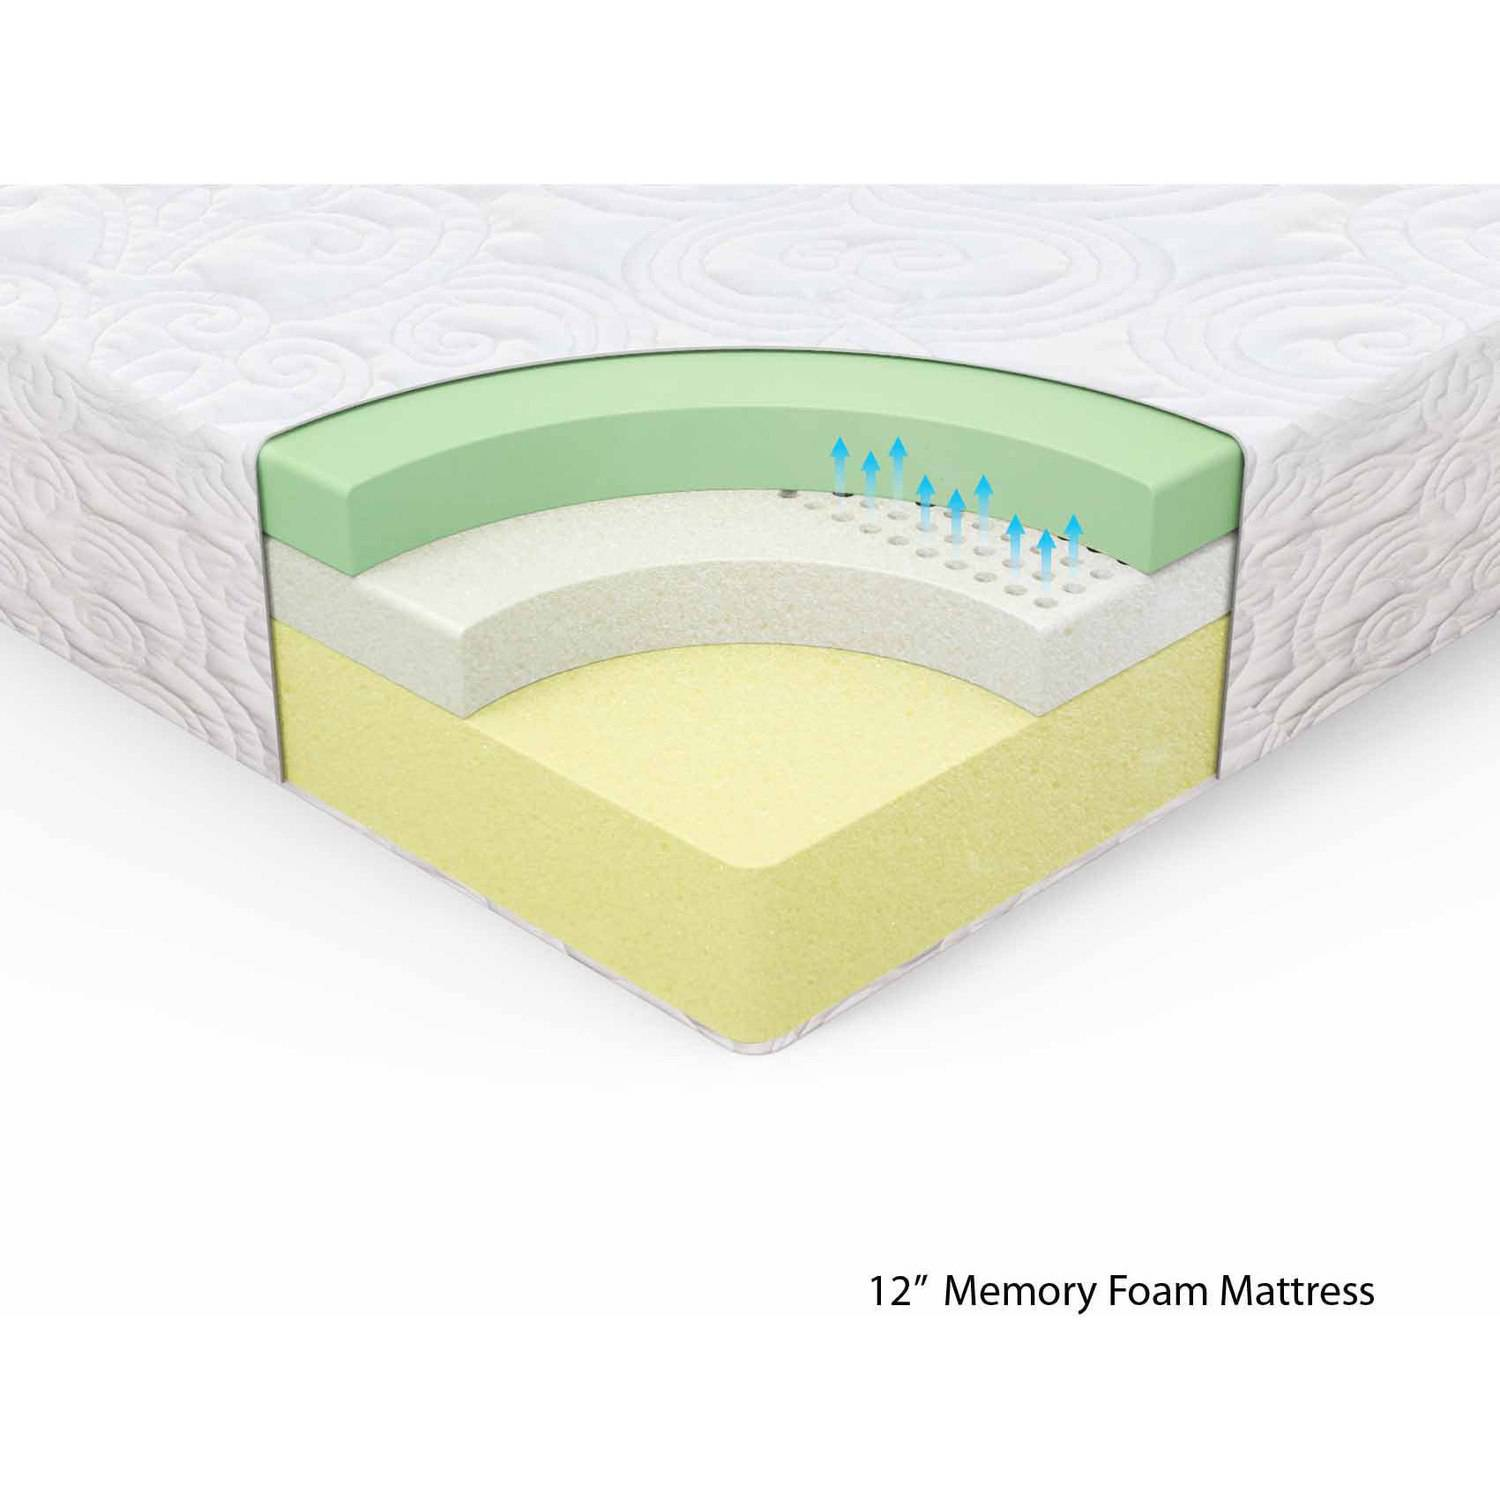 spa sensations 12 theratouch memory foam mattress multiple sizes walmartcom - Memory Foam Mattress